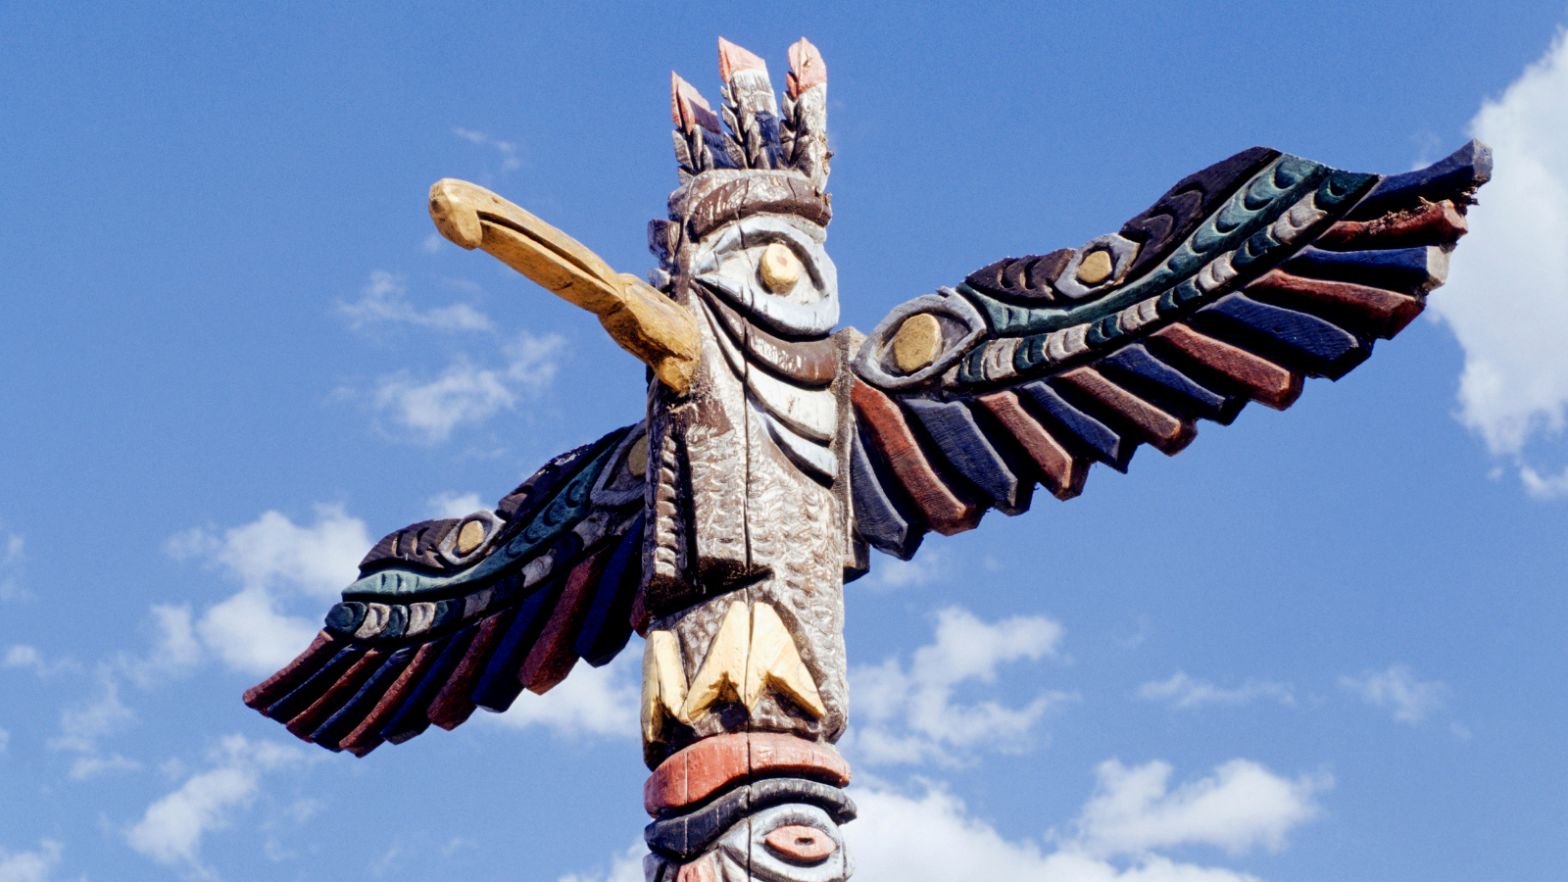 Conducting Domestic Violence Fatality Reviews in Tribal Communities